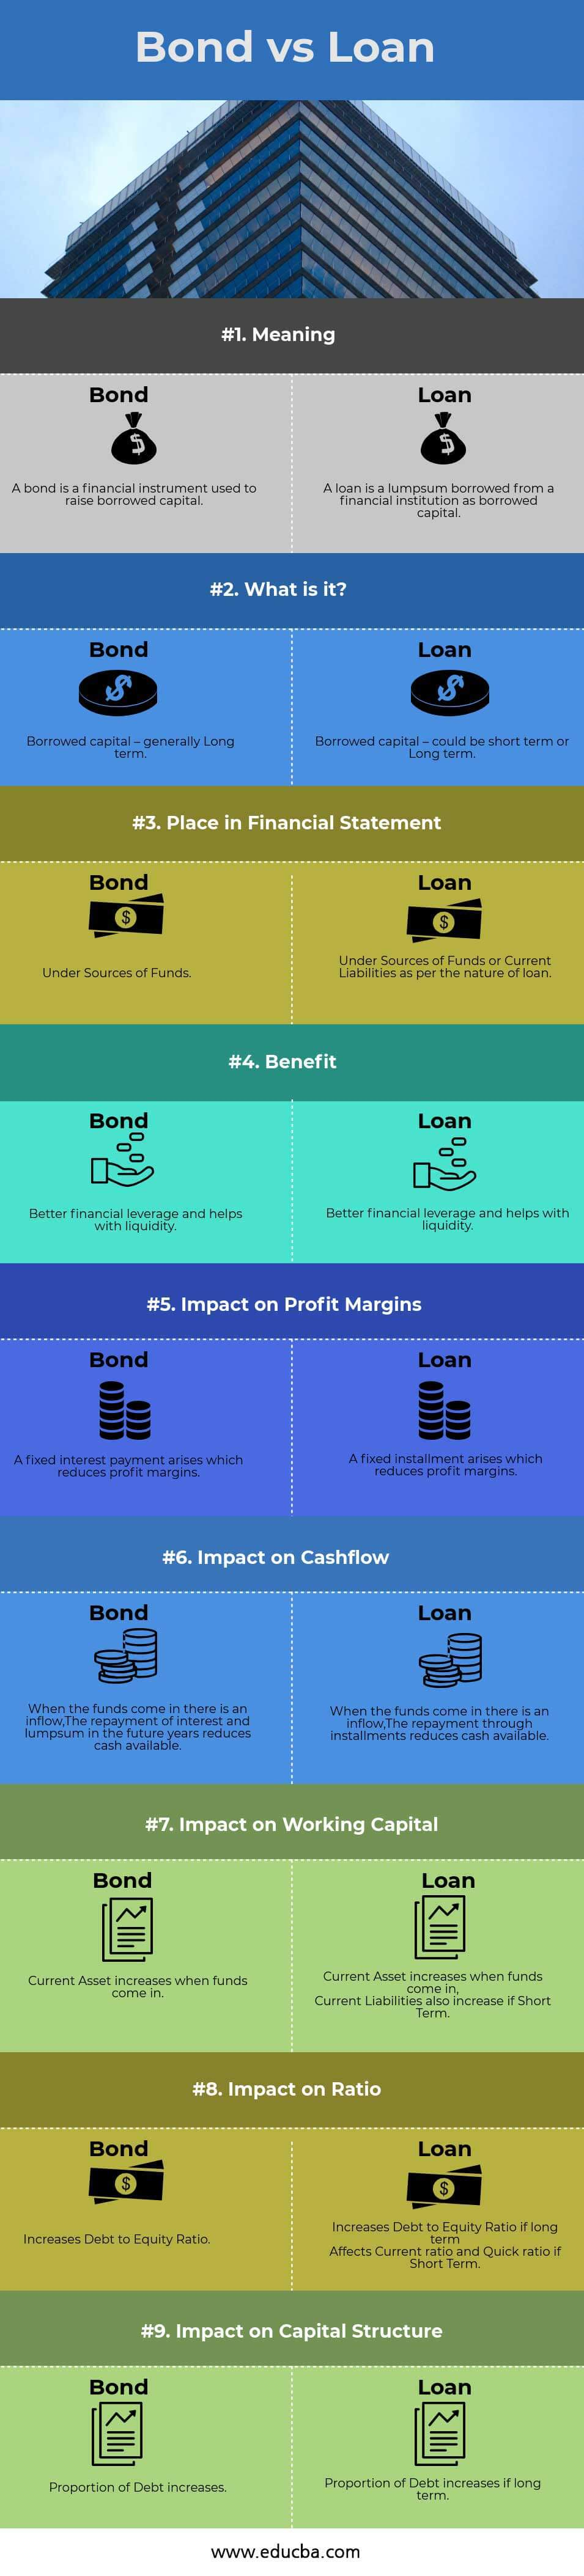 Bond-vs-Loan-infographic